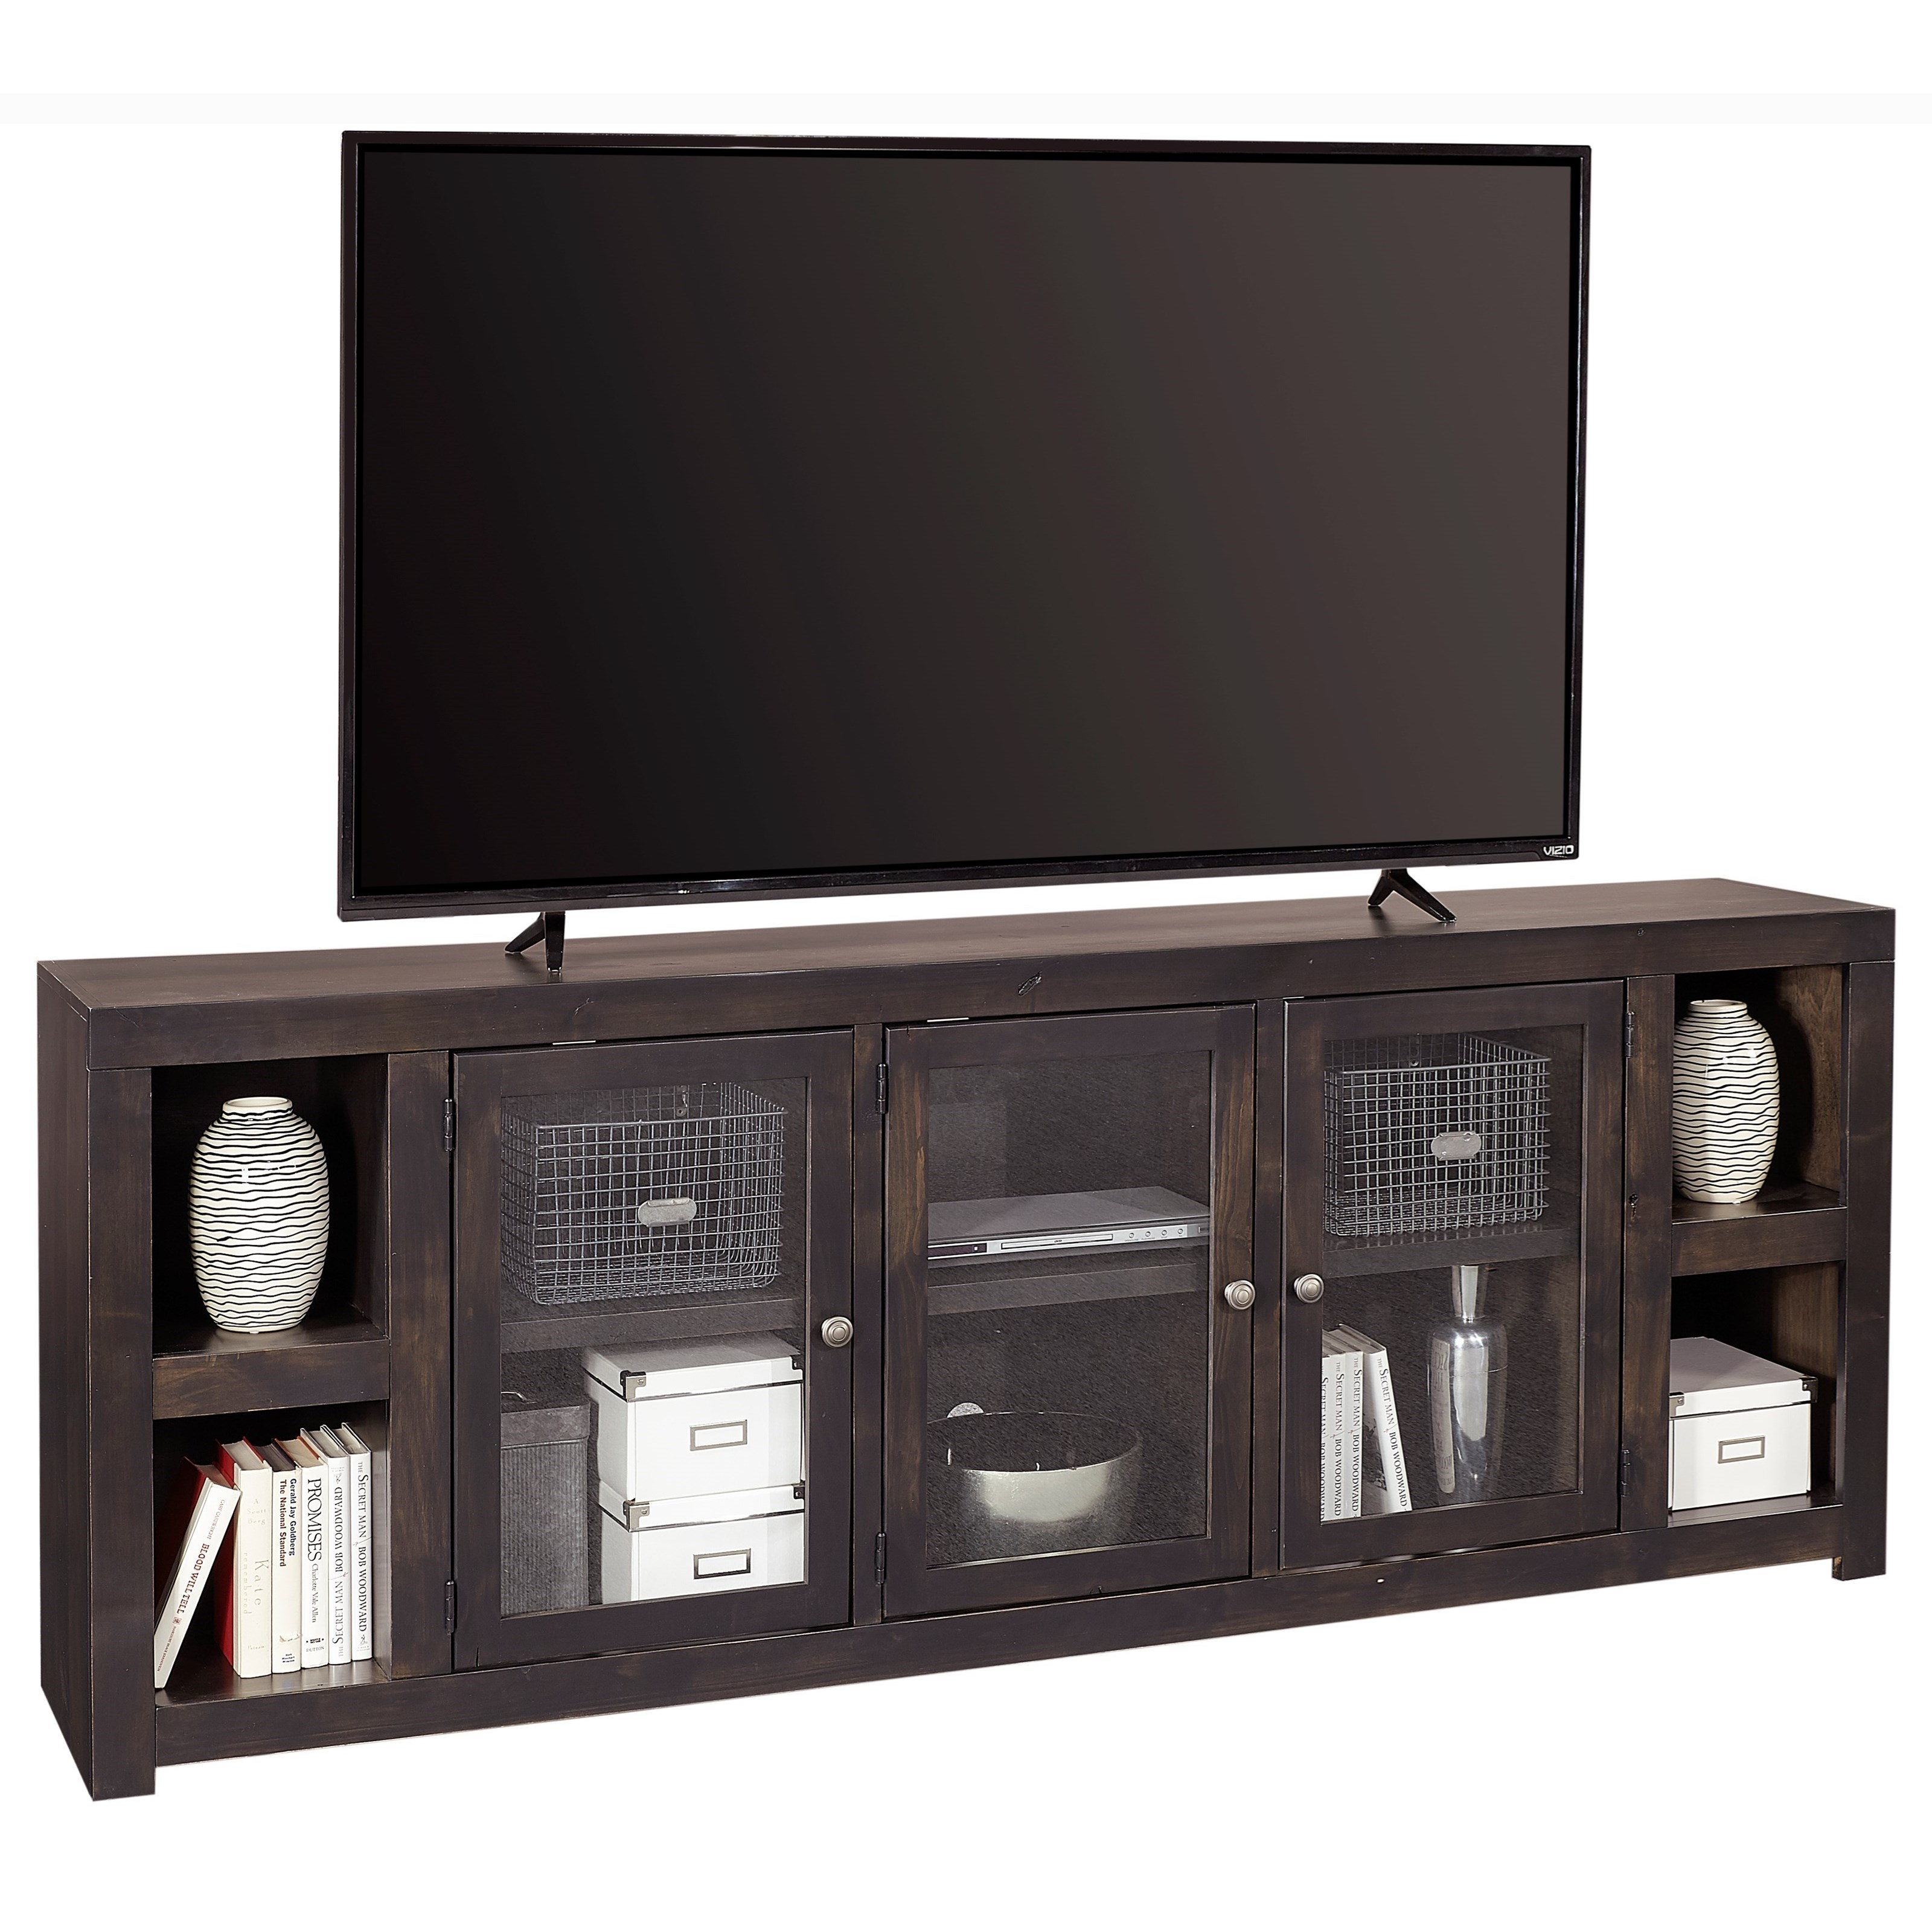 "Avery Loft 84"" TV Console by Aspenhome at Baer's Furniture"